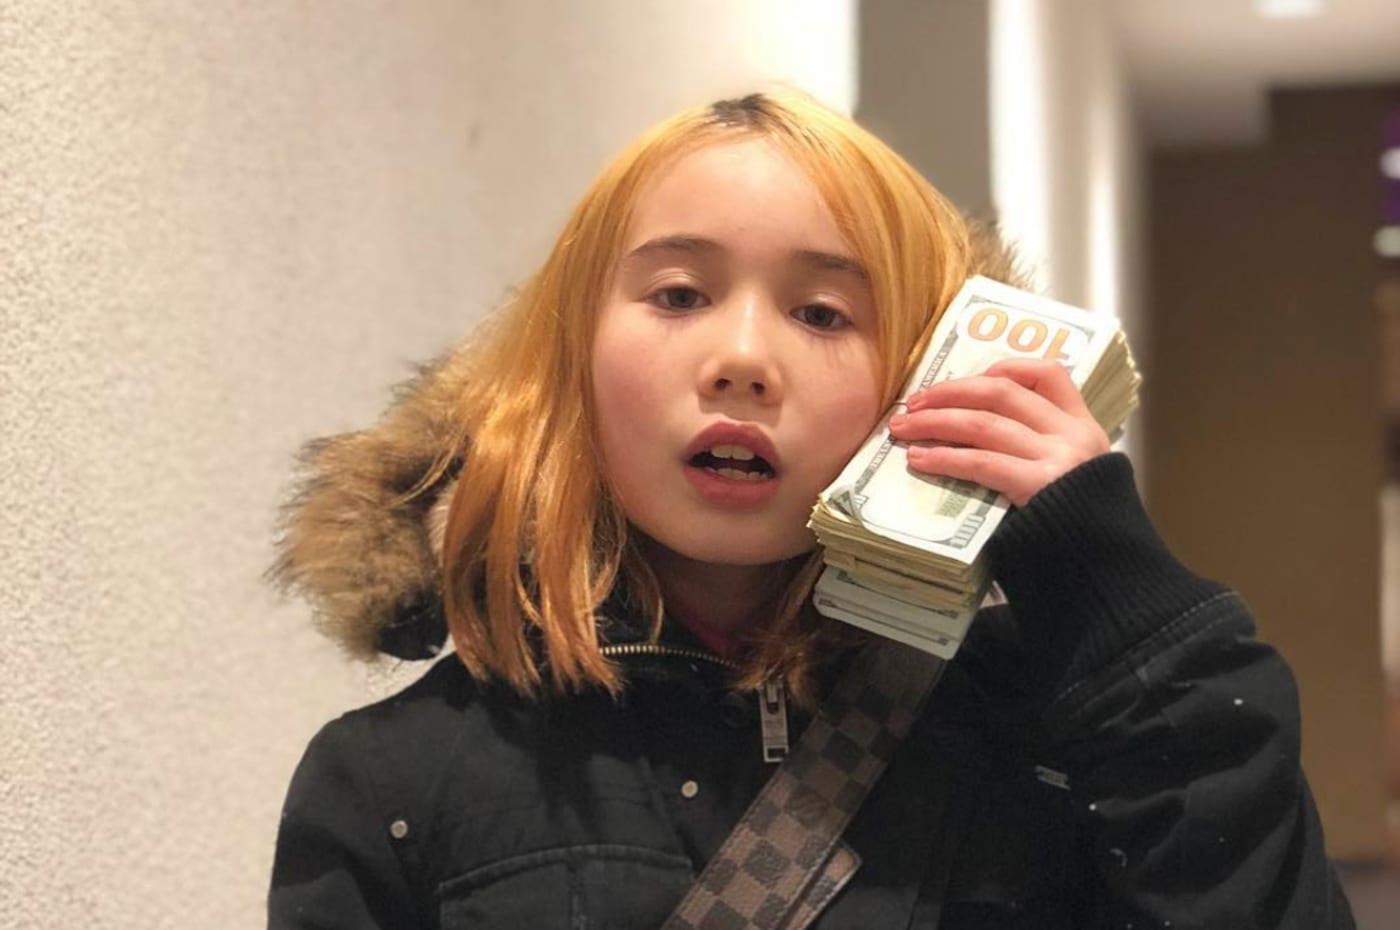 Lil Tay Viral Star Fighting for Freedom